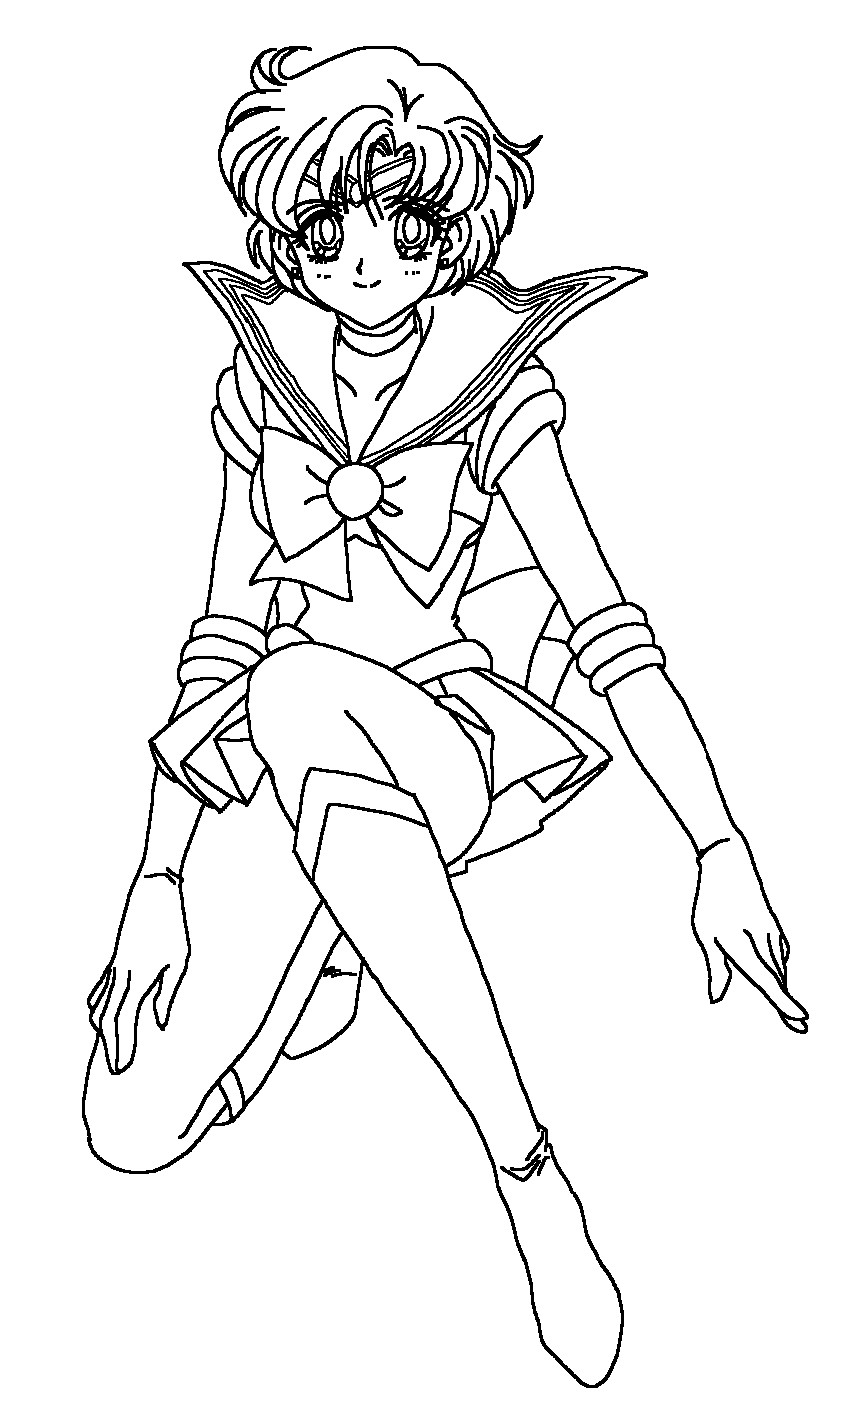 Coloring Pages Sailor Mercury Coloring Pages deviantart more like sailor mercury coloring page by sailortwilight sailortwilight